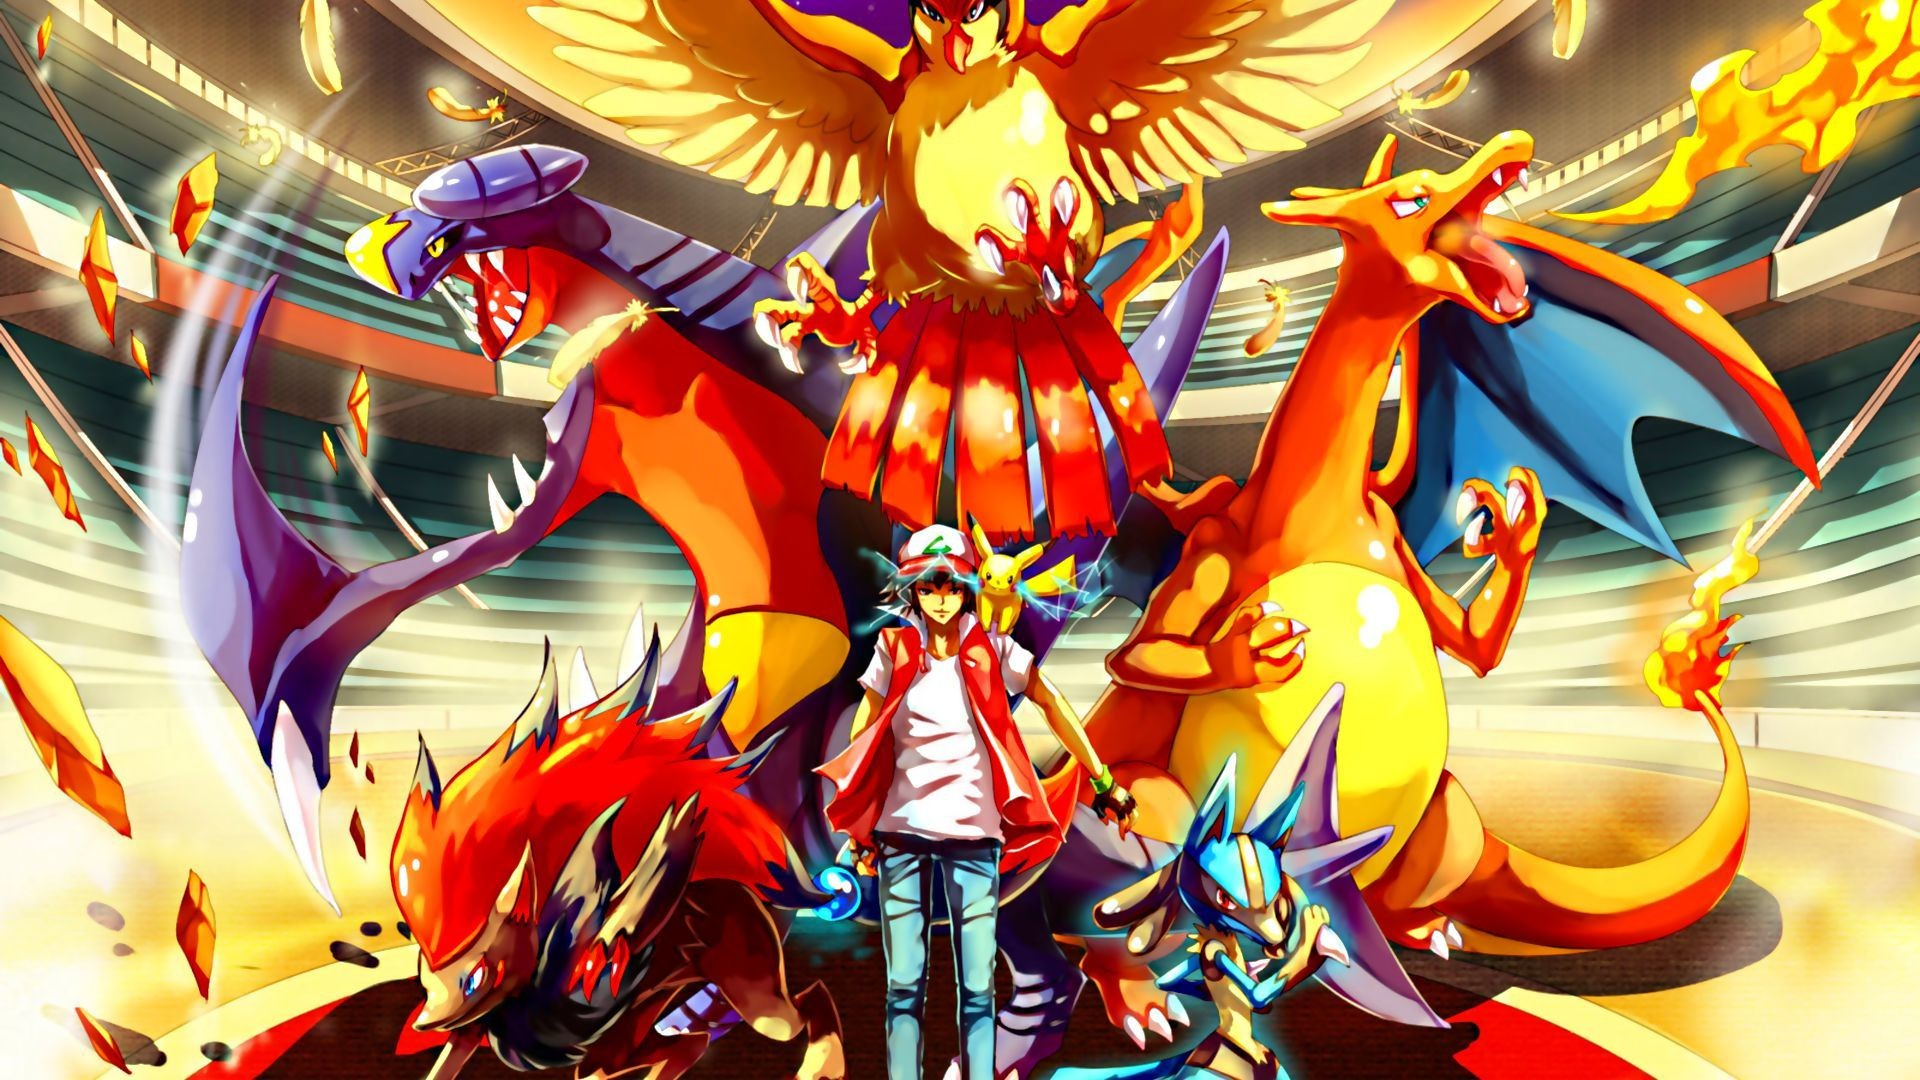 Res: 1920x1080, Pokemon HD Full HD Quality Wallpapers -  for PC & Mac, Tablet,  Laptop, Mobile